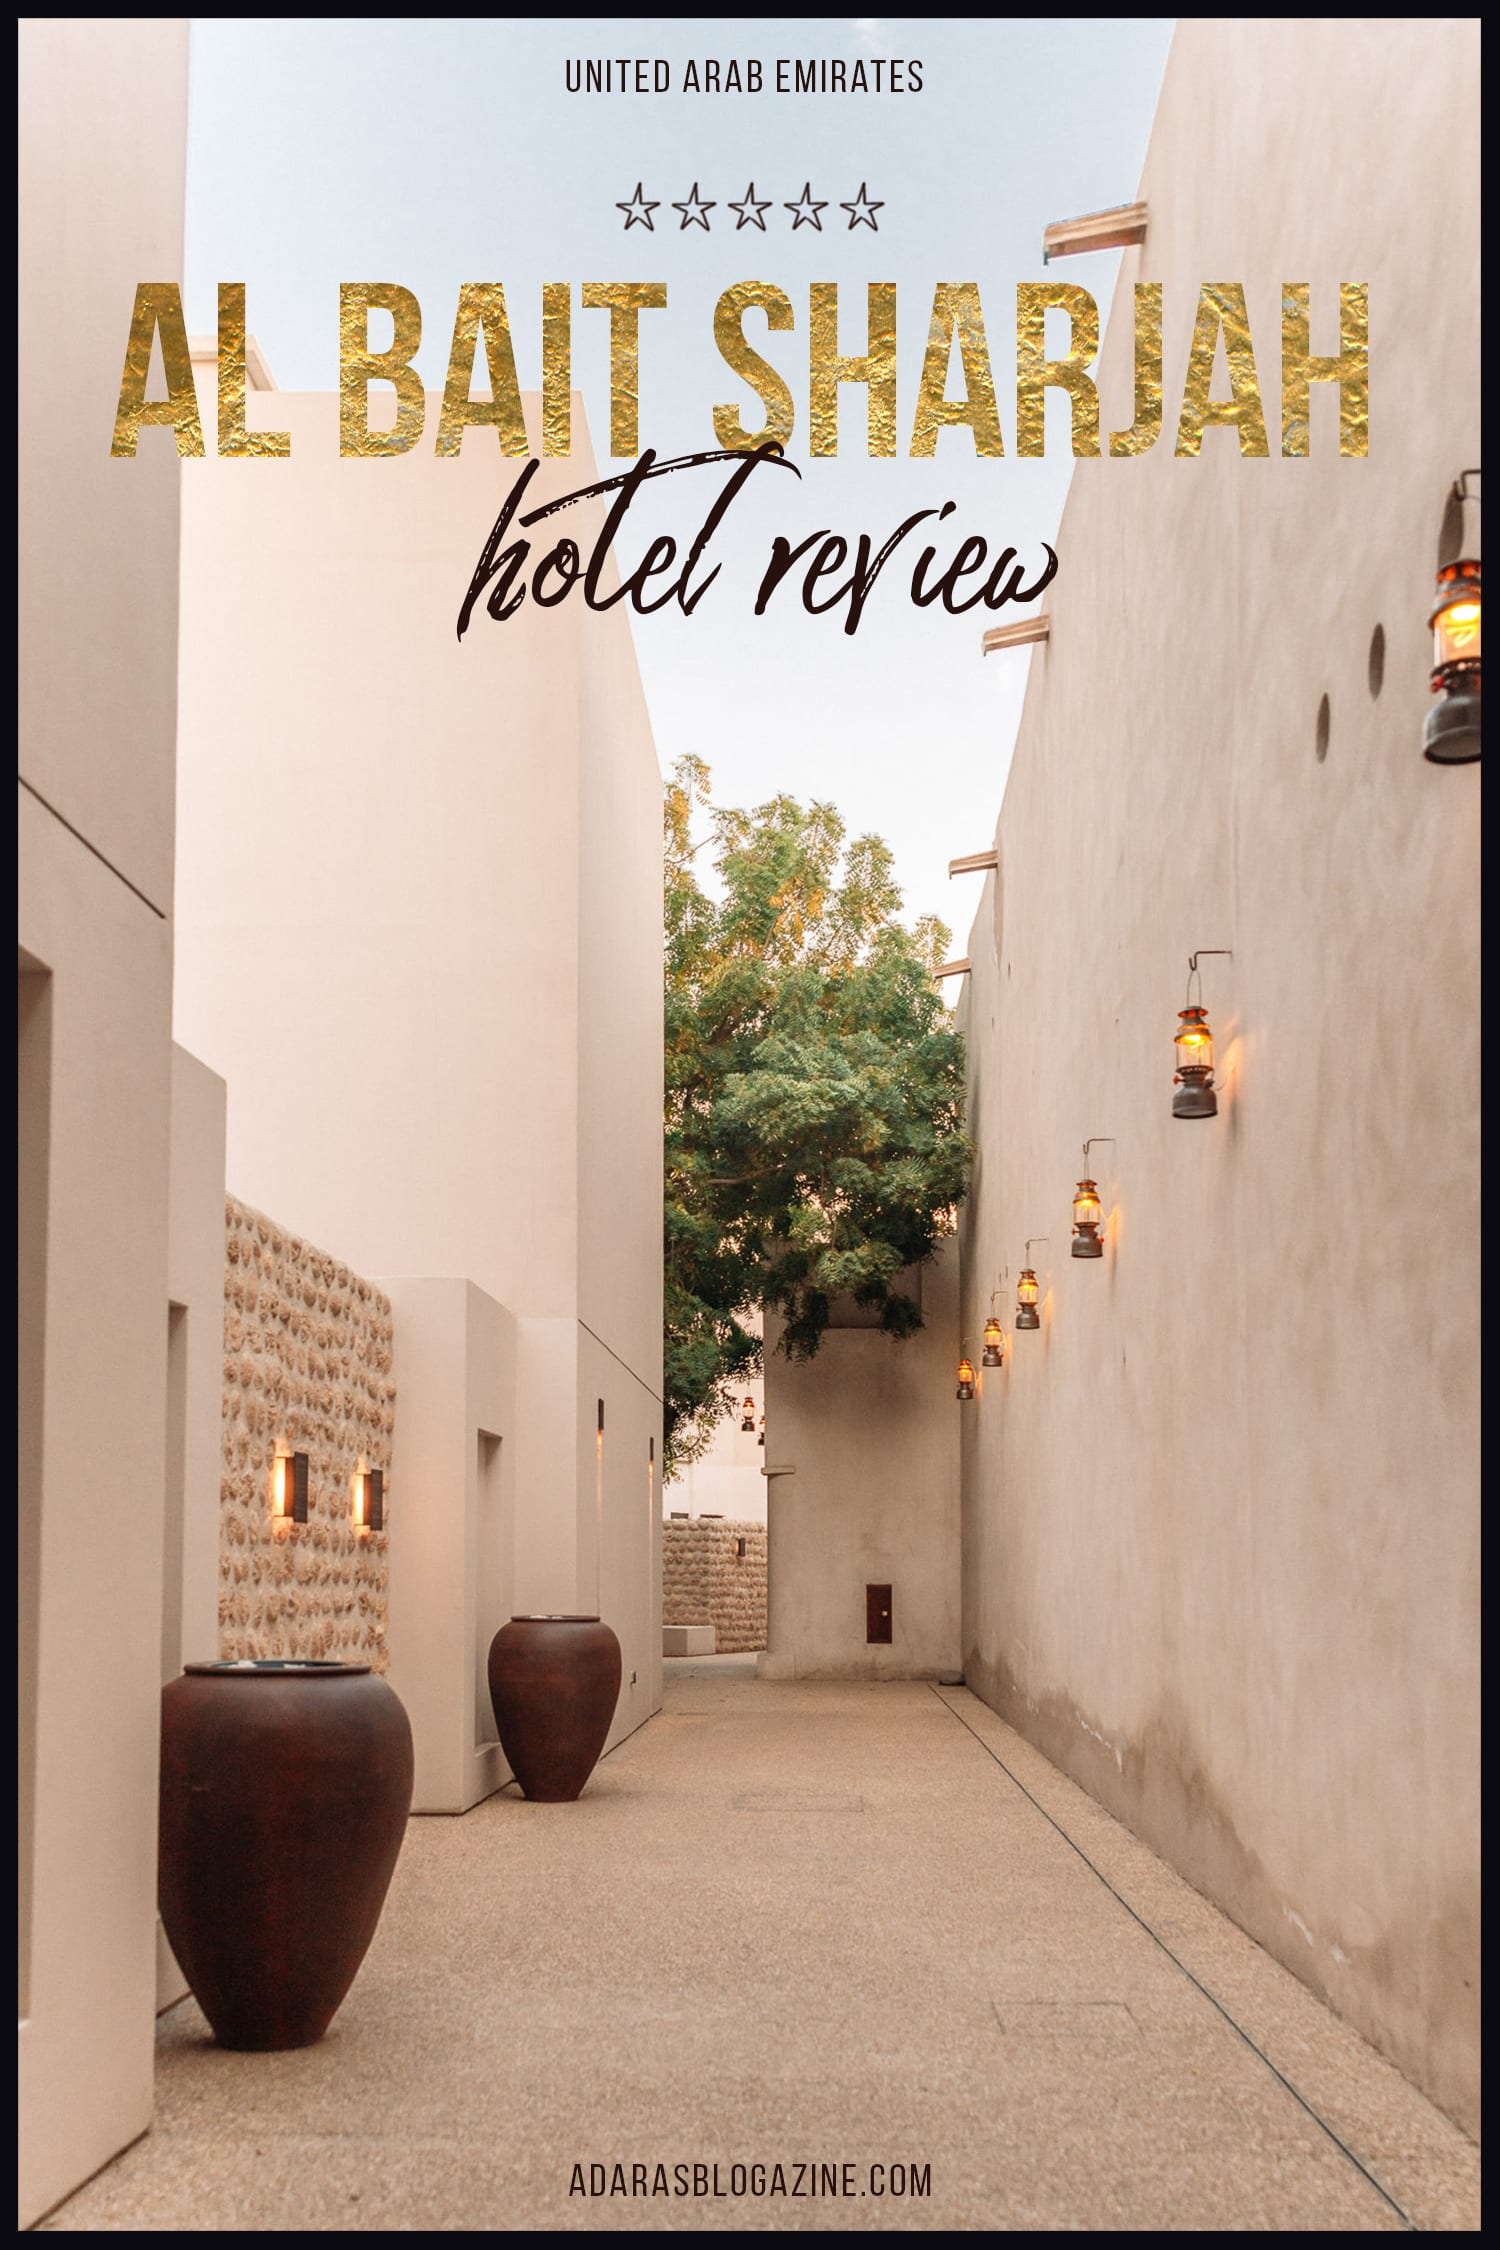 Al Bait Sharjah Resort Review, United Arab Emirates